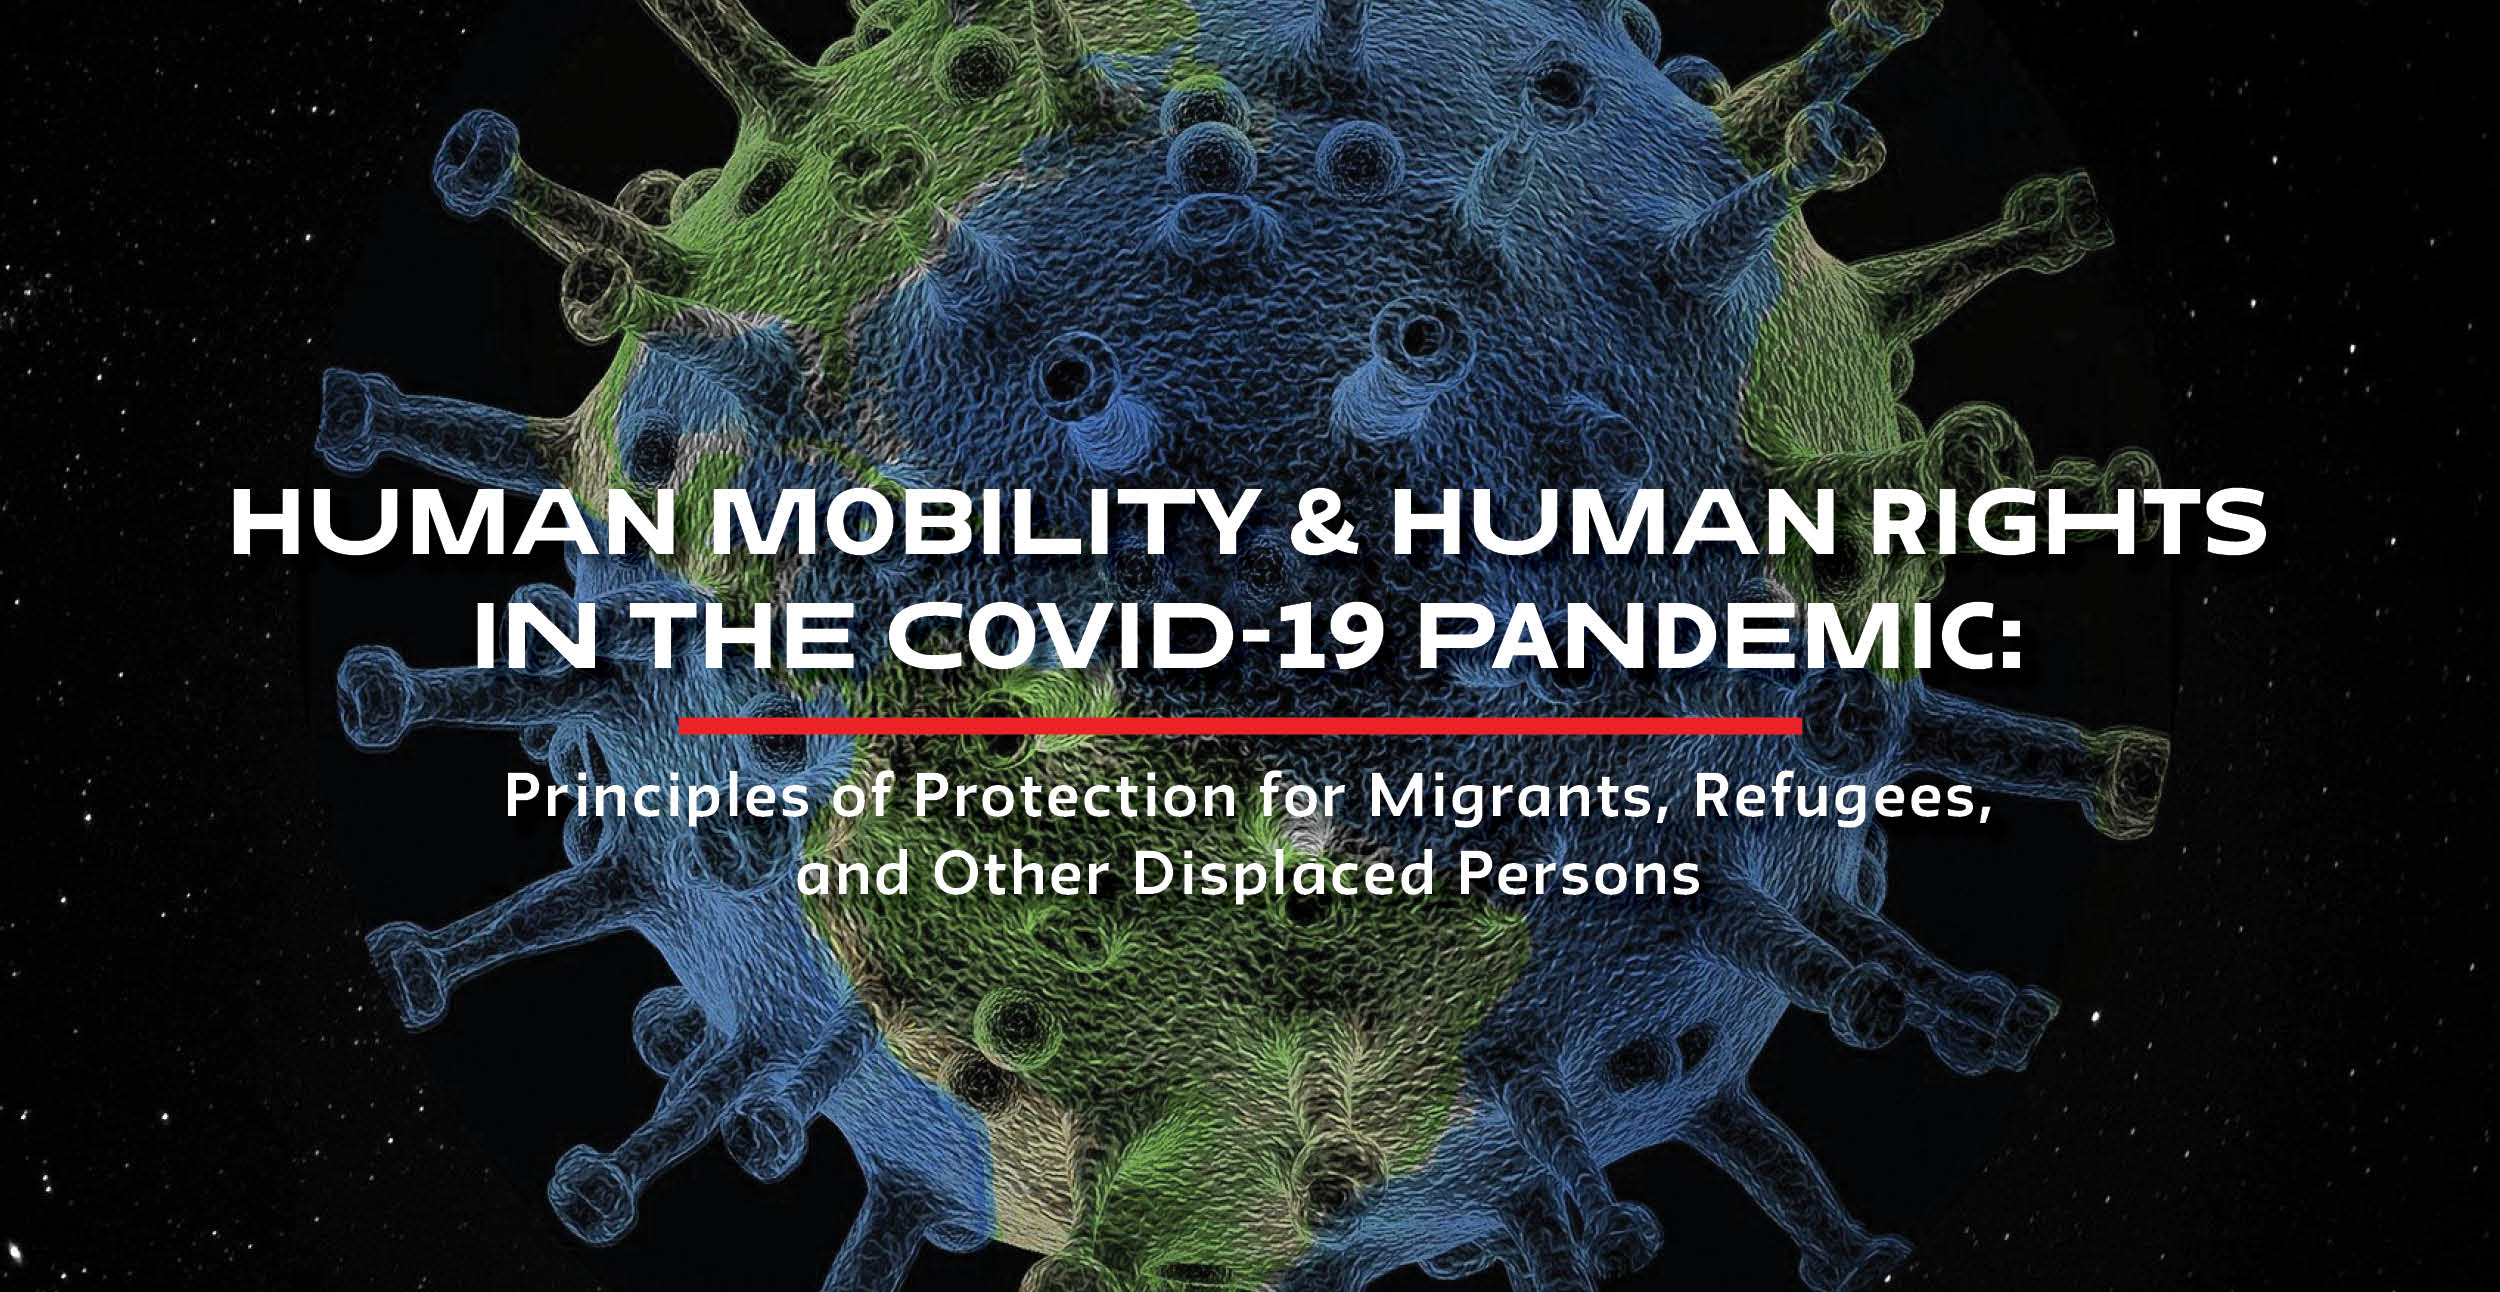 human rights in the covid-19 pandemic